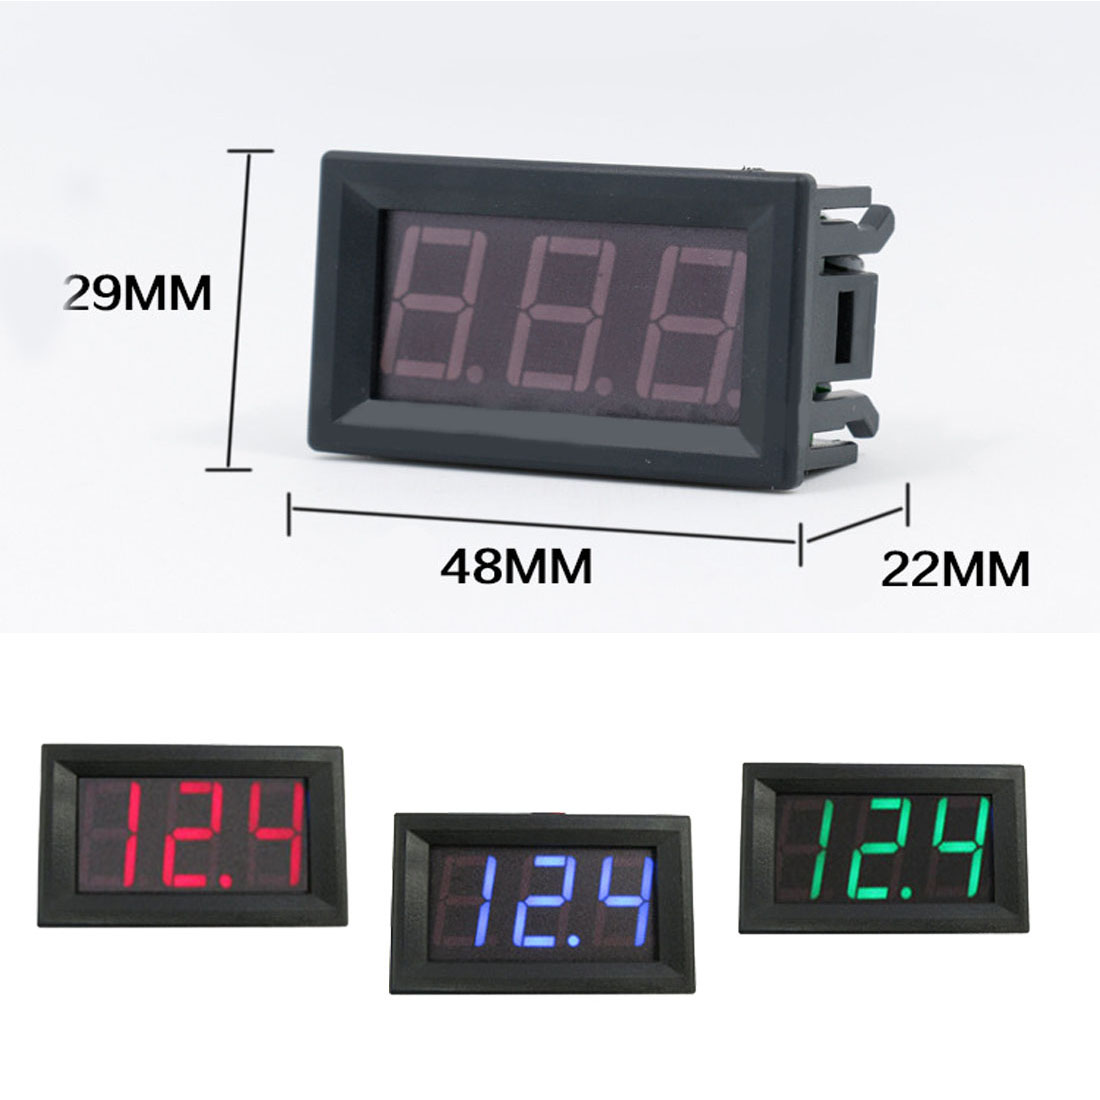 1pcs High Quality 0.56 inch LED DC 4.50V-30.0V Digital Voltmeter Home Use Voltage Display 2 Wires Red And Black yb27a led ac 60 300v digital voltmeter home use voltage display w 2 wires